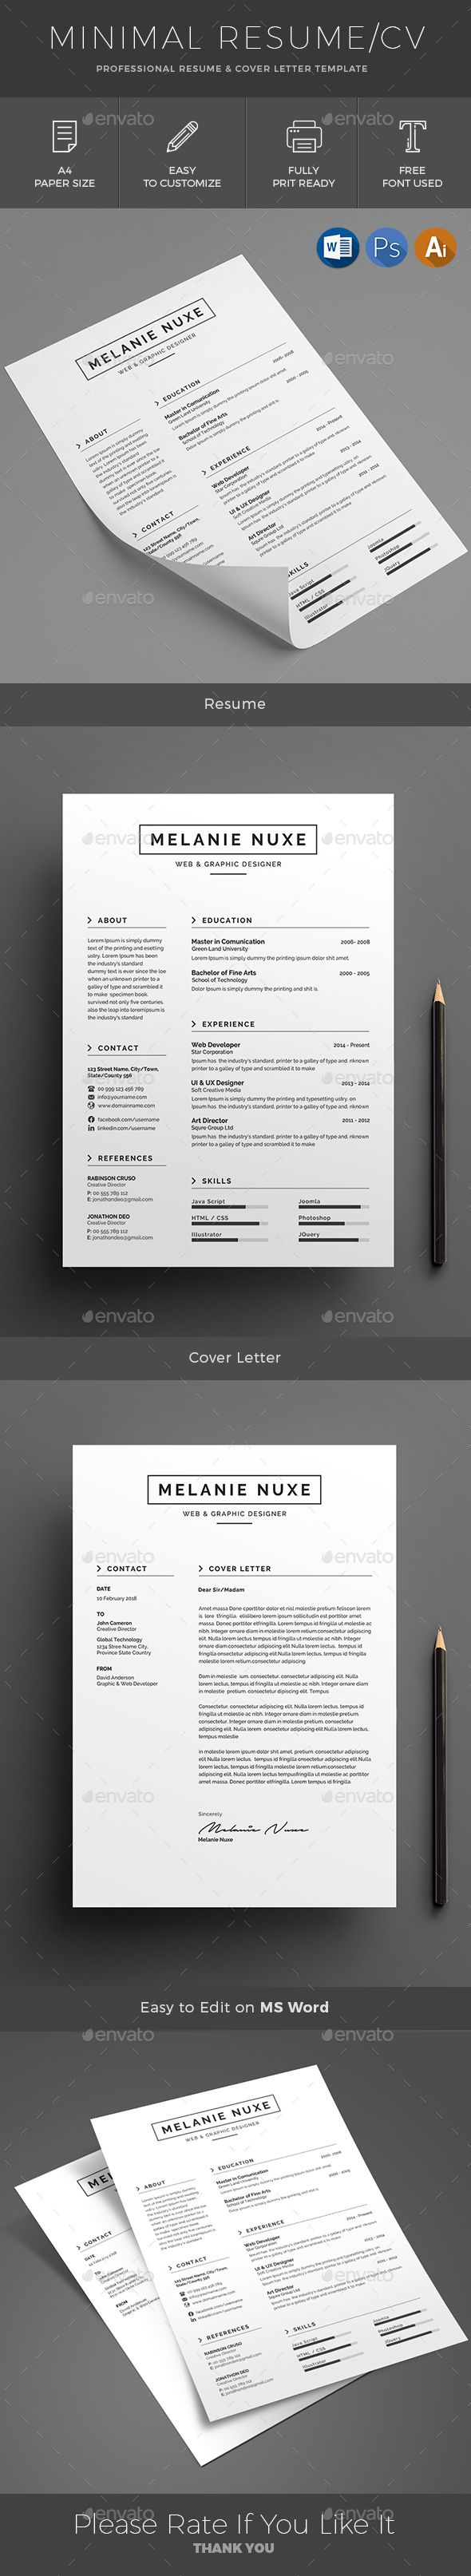 ResumeCV Word Template is a Minimal bold